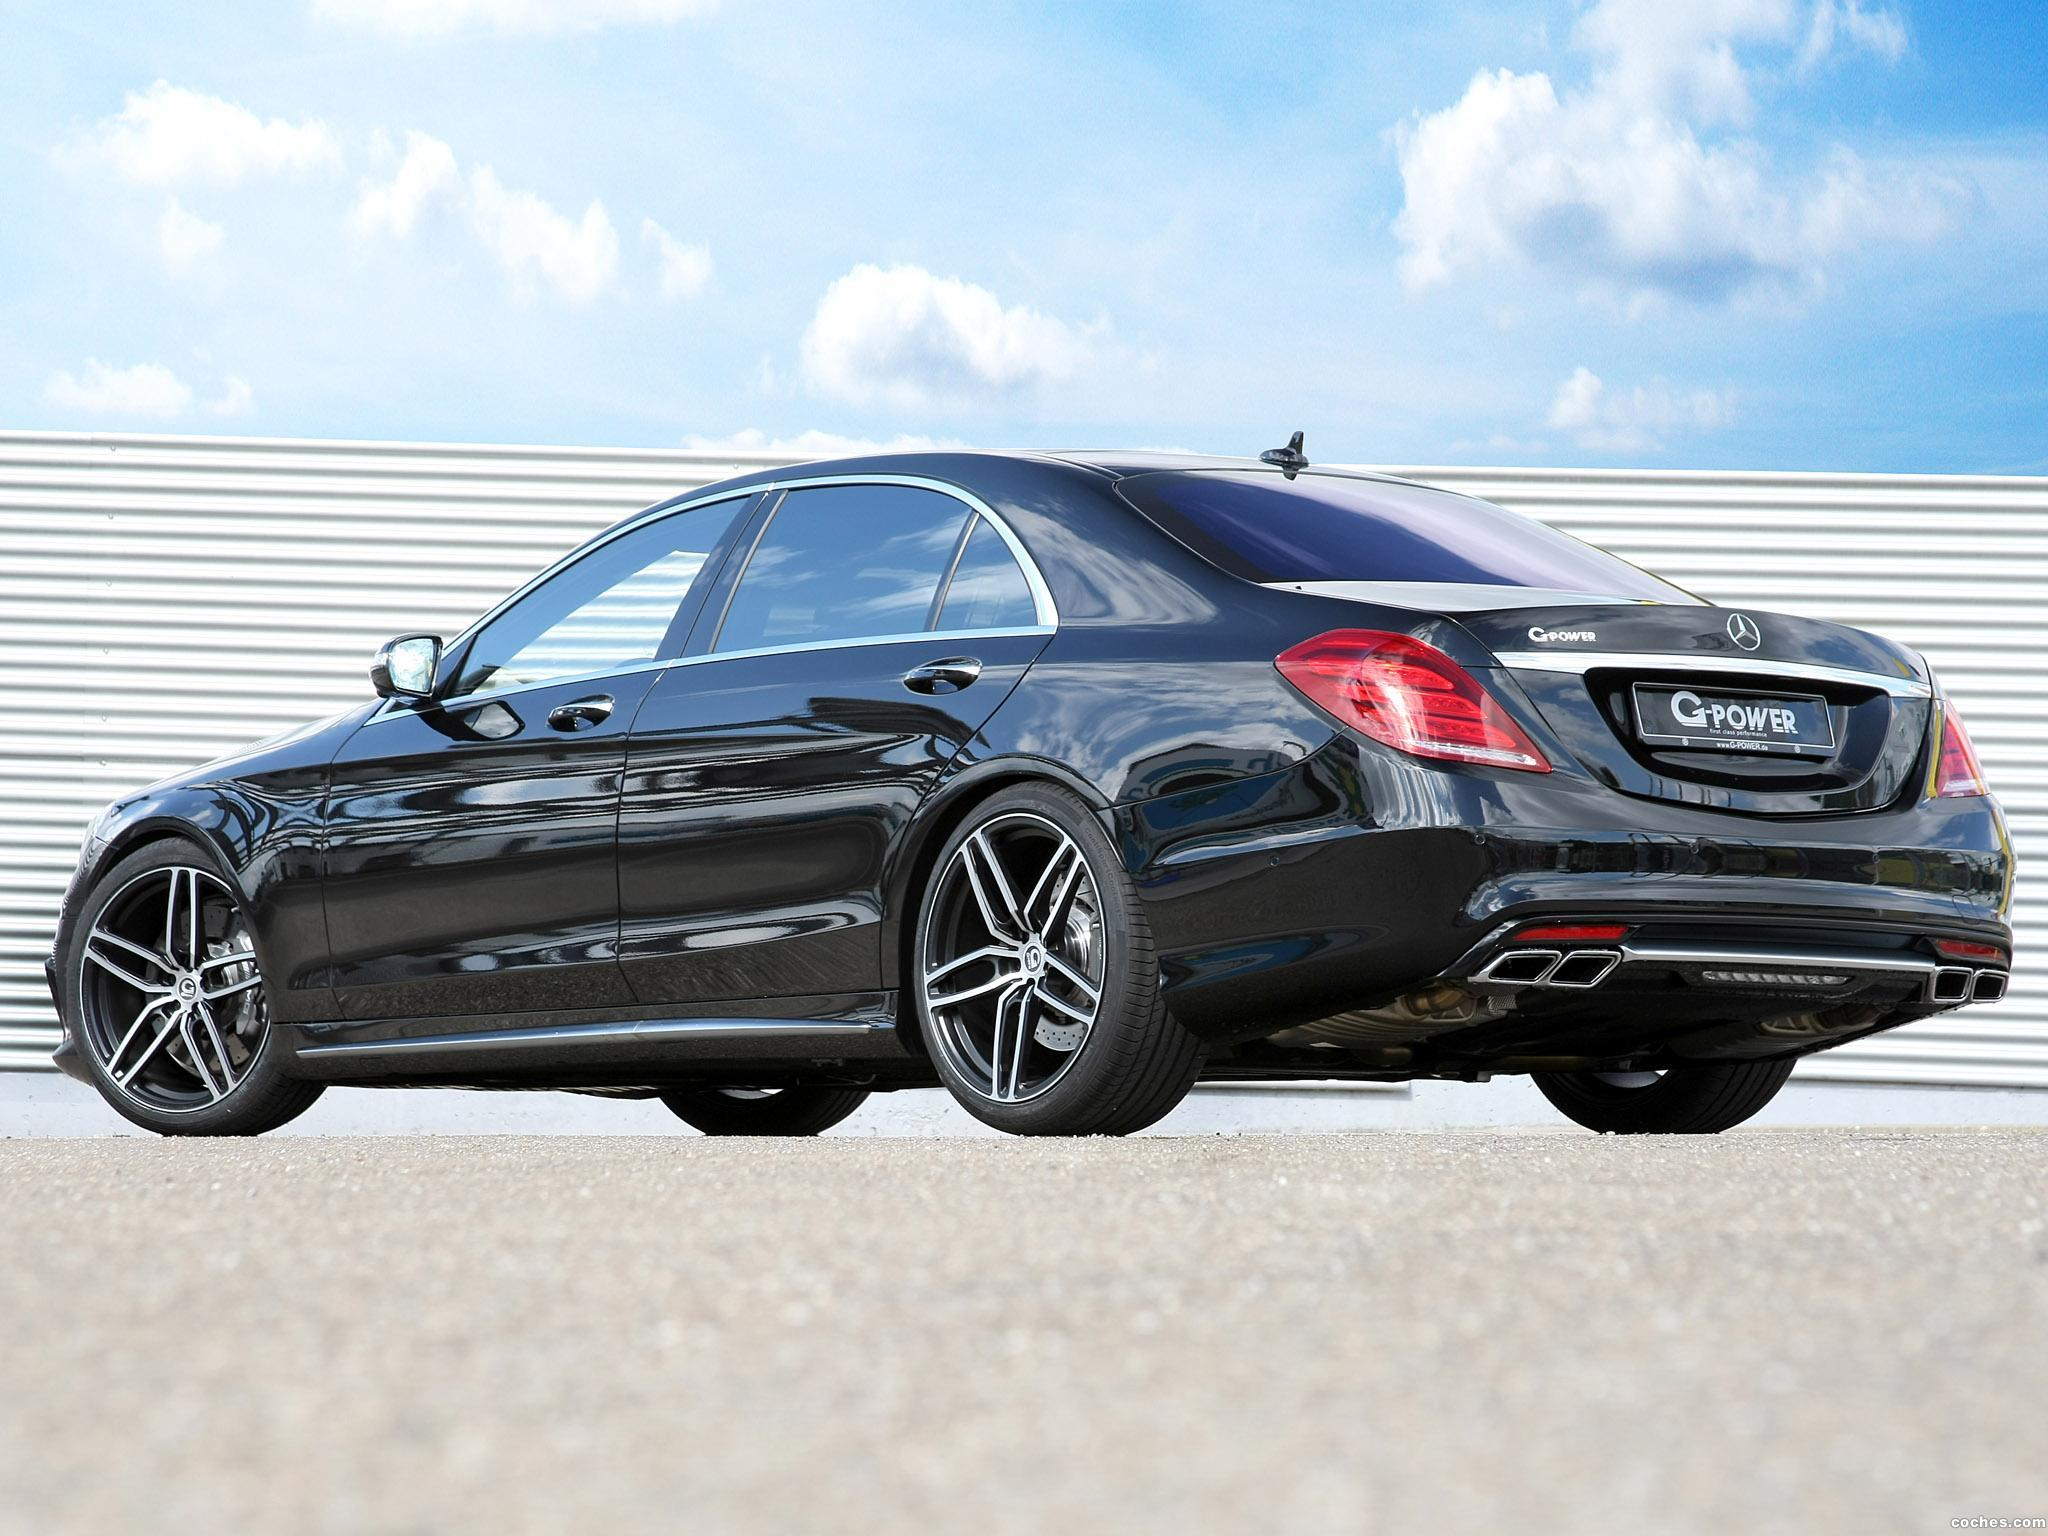 Foto 3 de G-power Mercedes AMG S63 Lang V222 2015